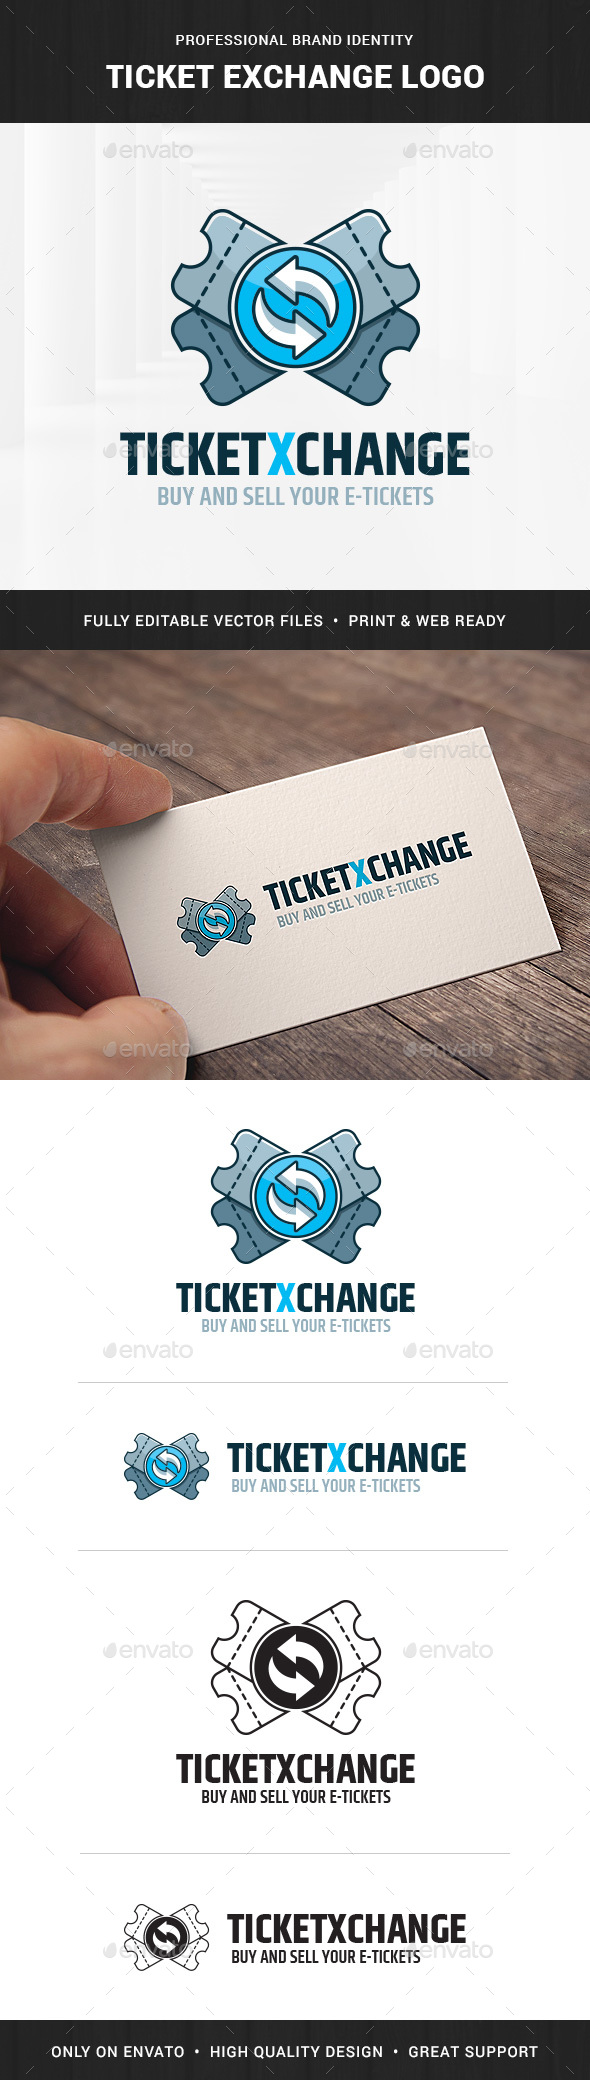 Ticket Exchange Logo Template - Objects Logo Templates